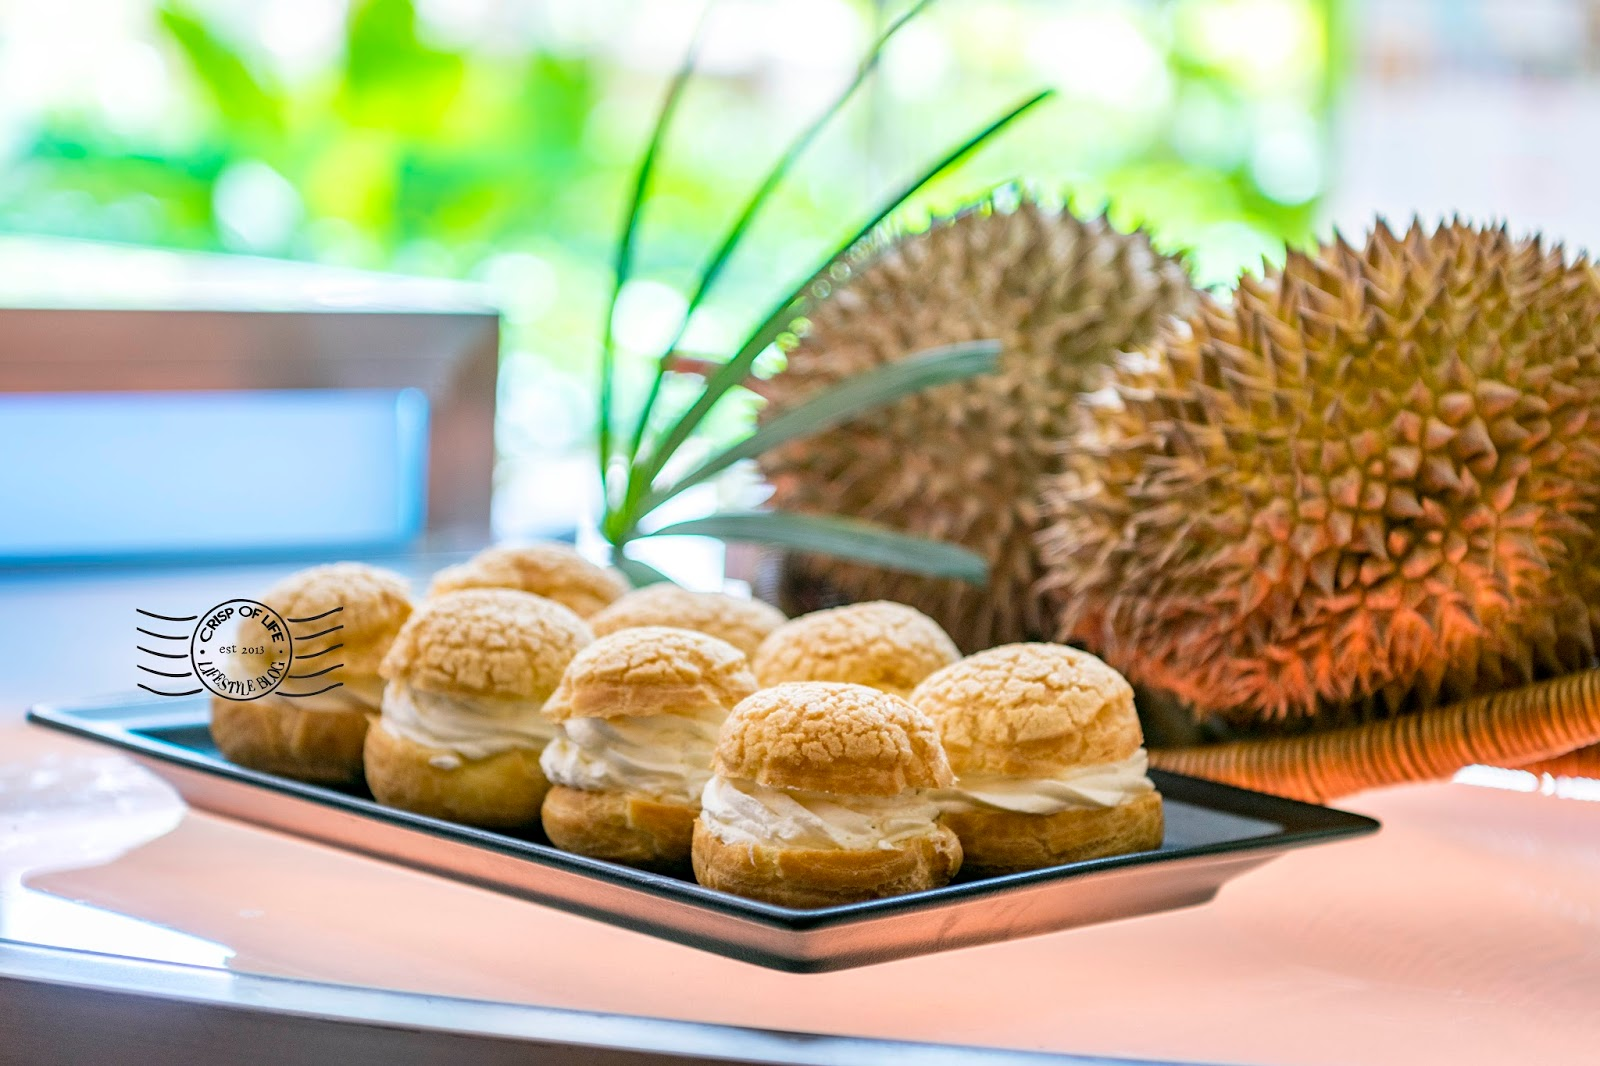 [Limited Time] Durian Puff @ Rasa Deli, Shangri-La's Rasa Sayang Resort and Spa, Batu Ferringhi, Penang